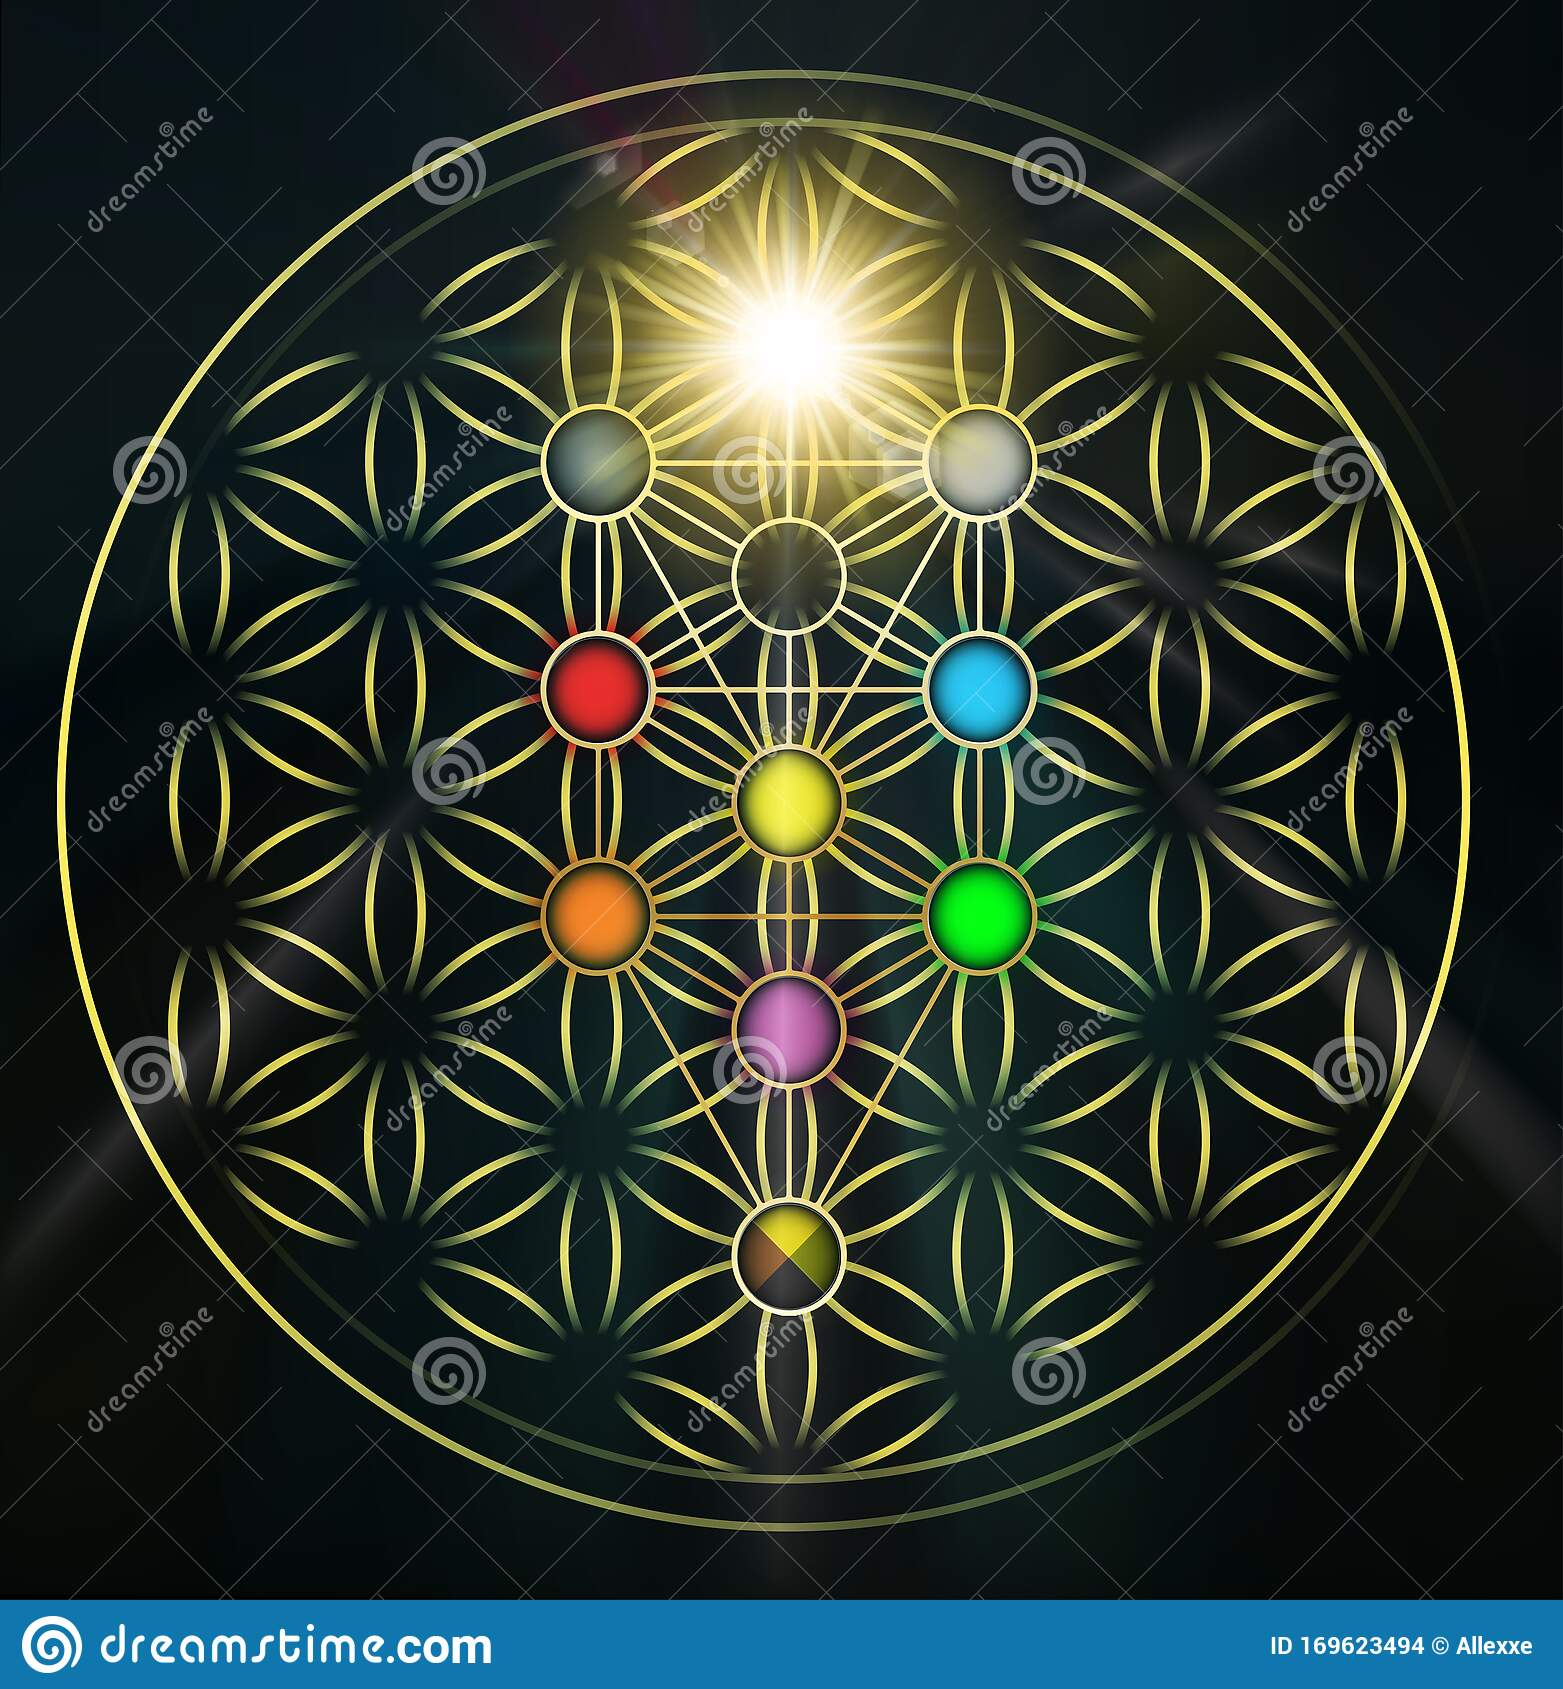 Kabbalah Tree Of Life Art / In transformational kabbalah the tree of life is used as a pragmatic tool for seeing how and why things, people, and events manifest the sefirot of the tree of life.